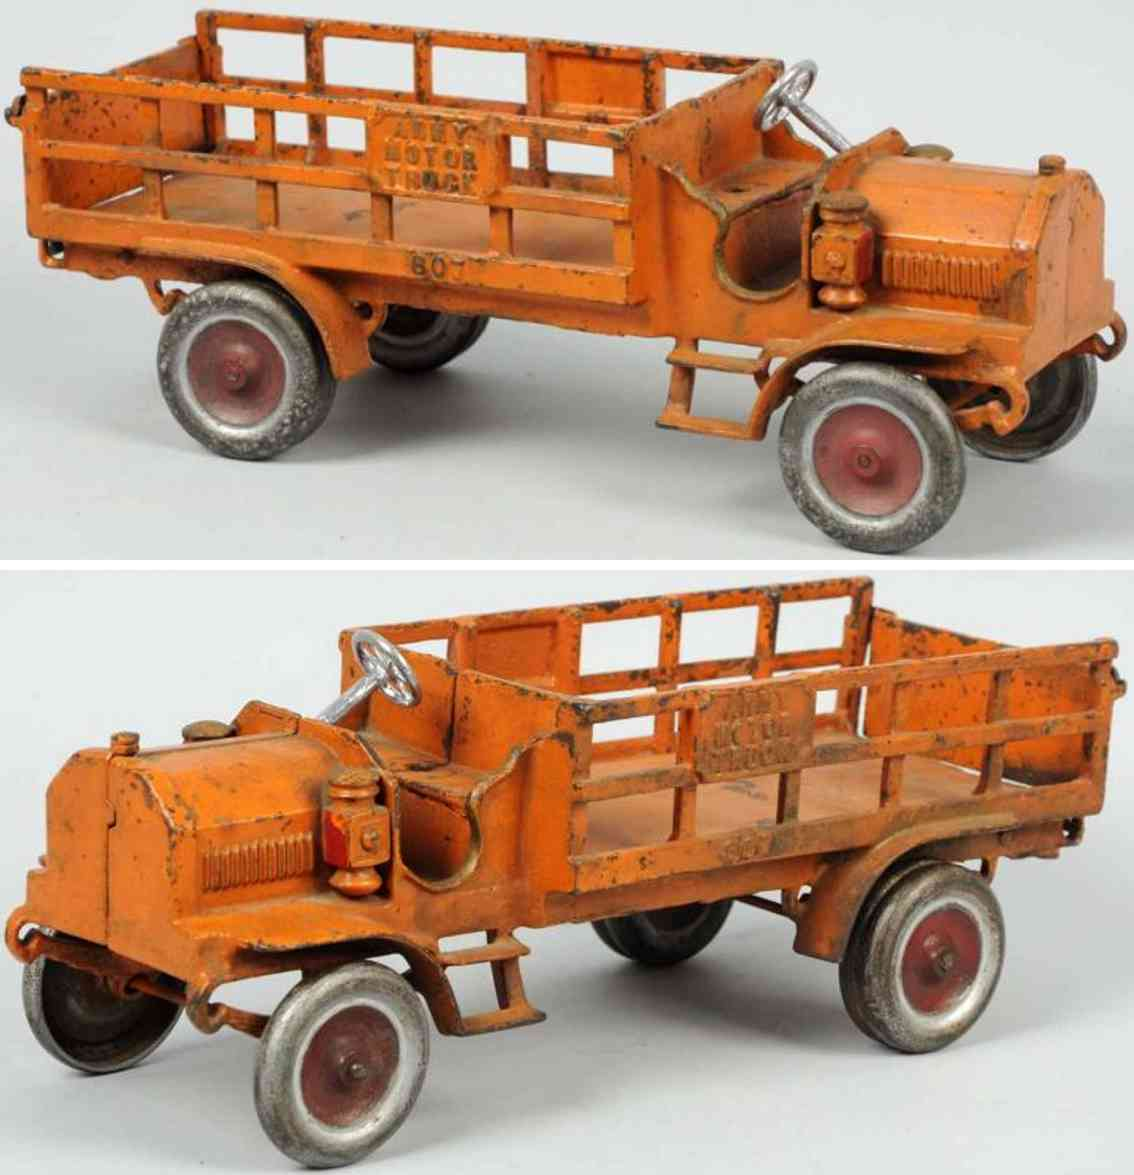 dent hardware co 807 cast iron army motor truck orange